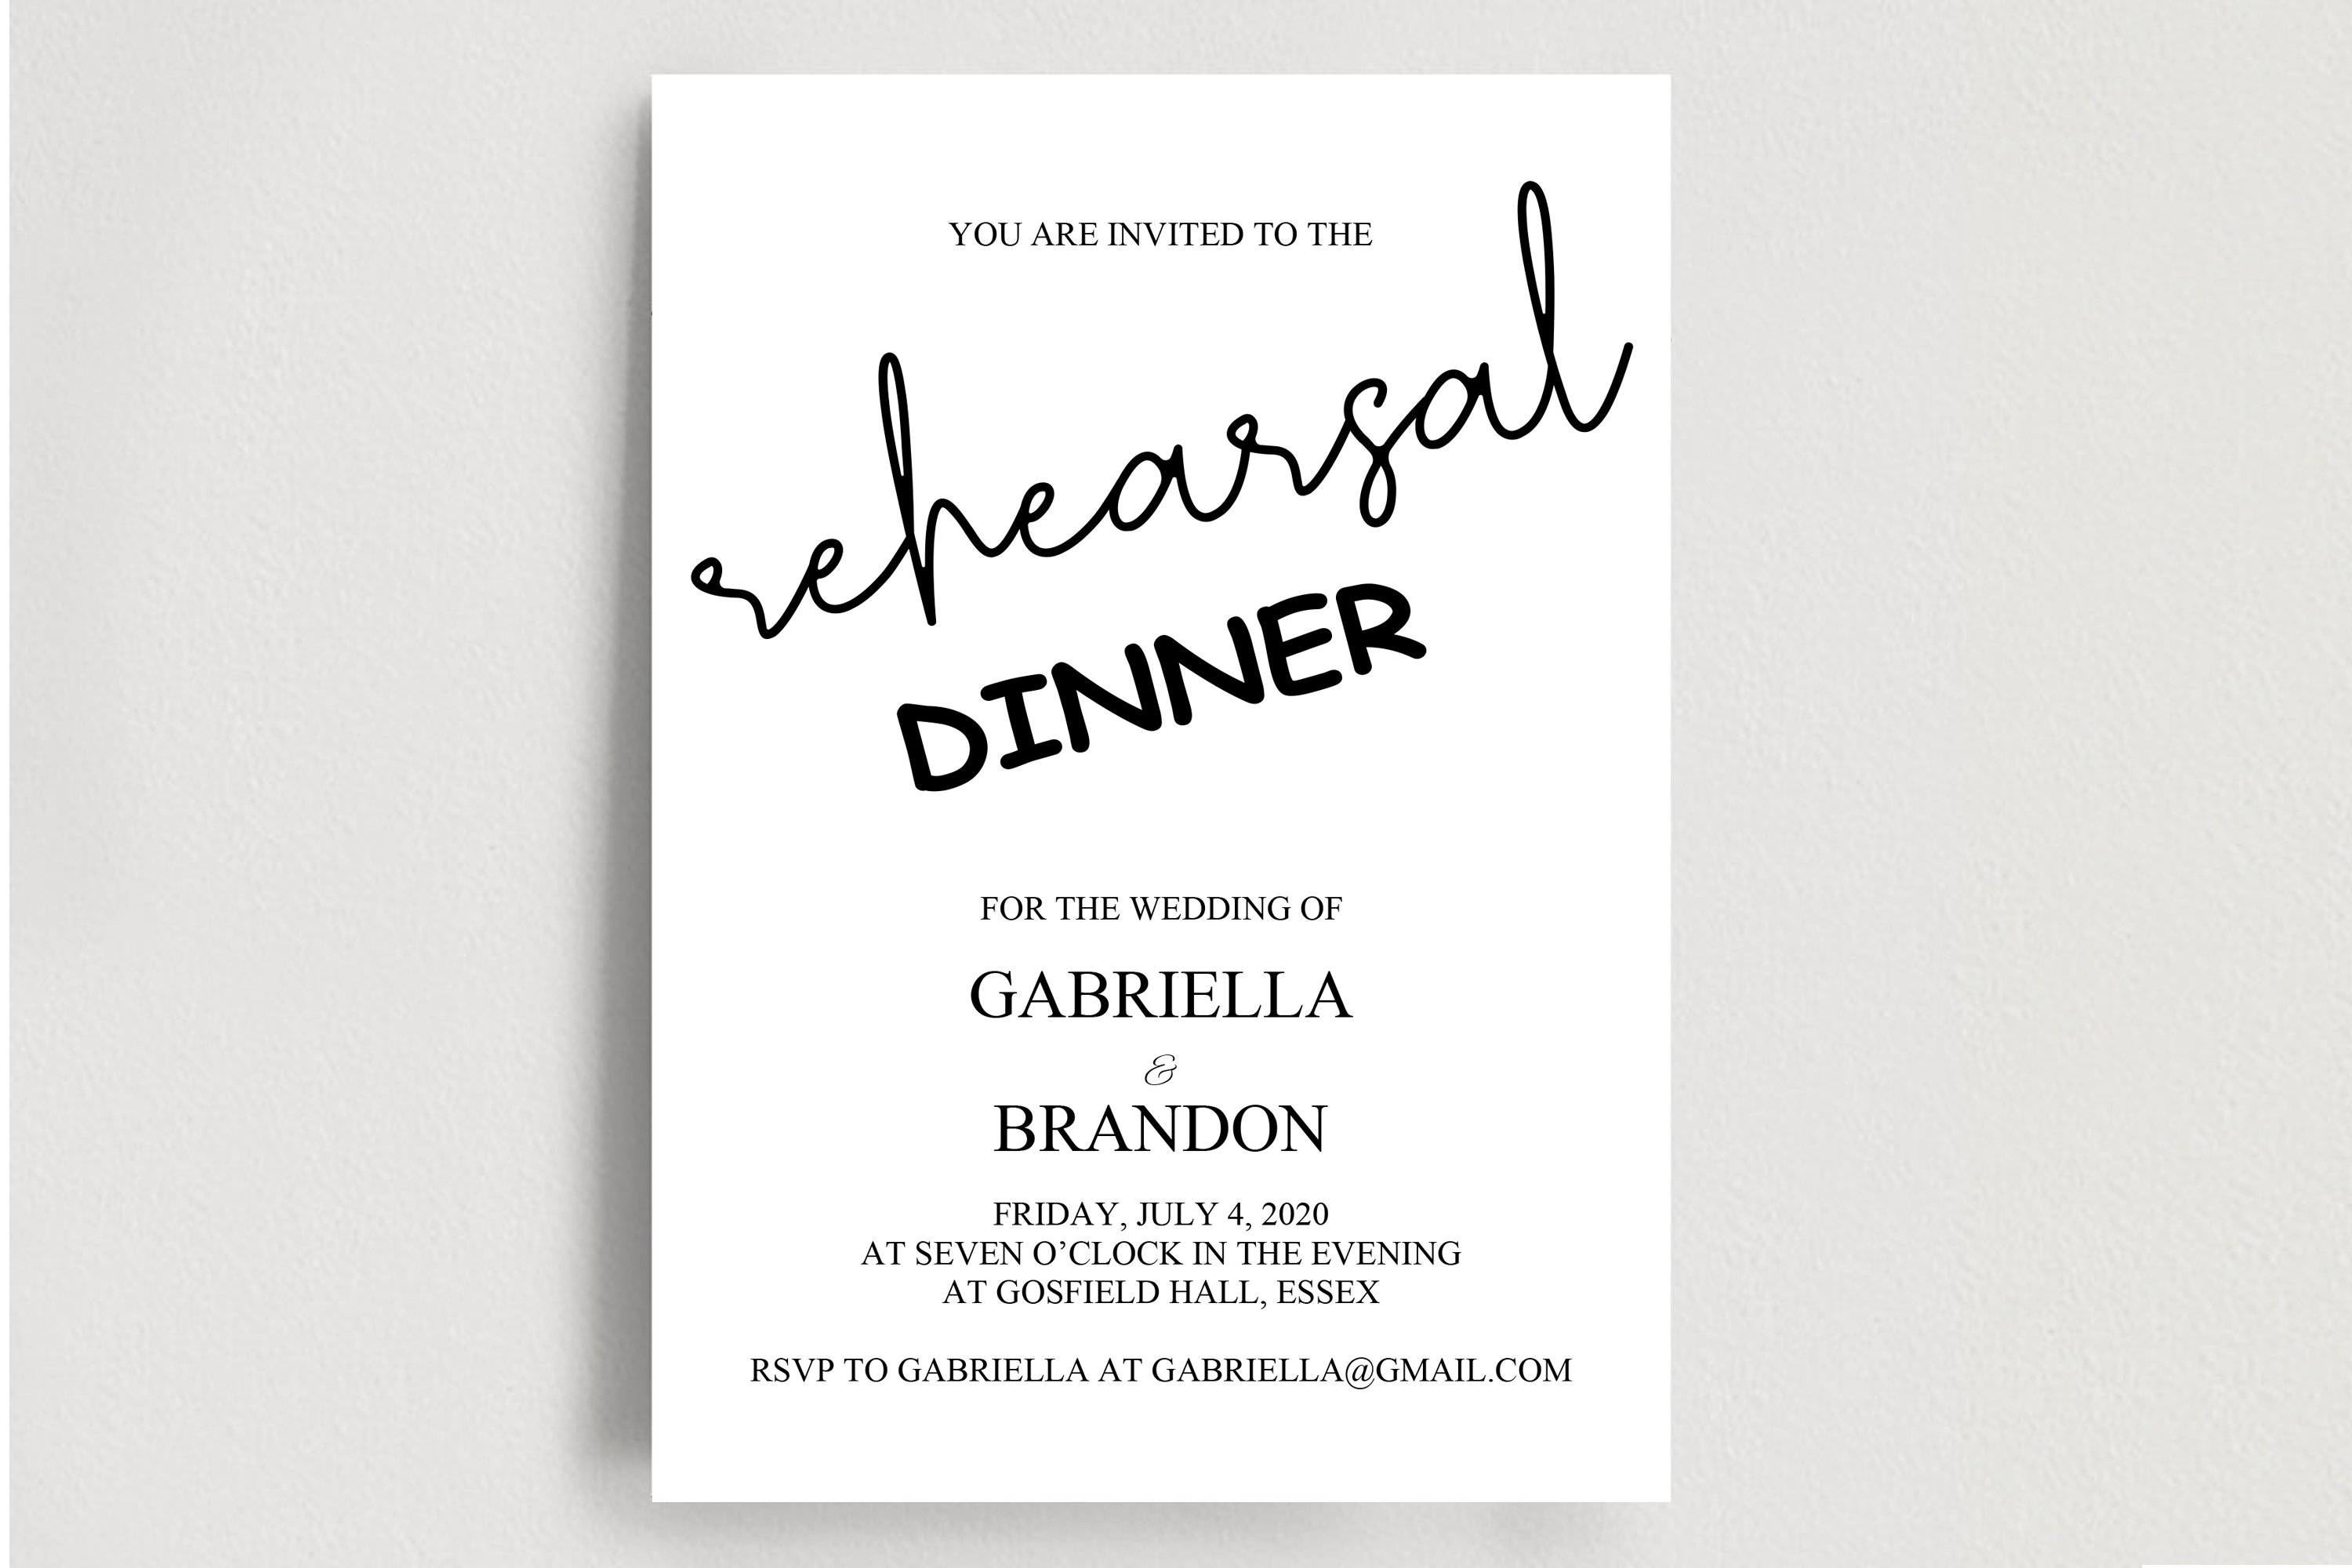 Rustic Rehearsal Dinner Invitation, Invitation Template example image 2